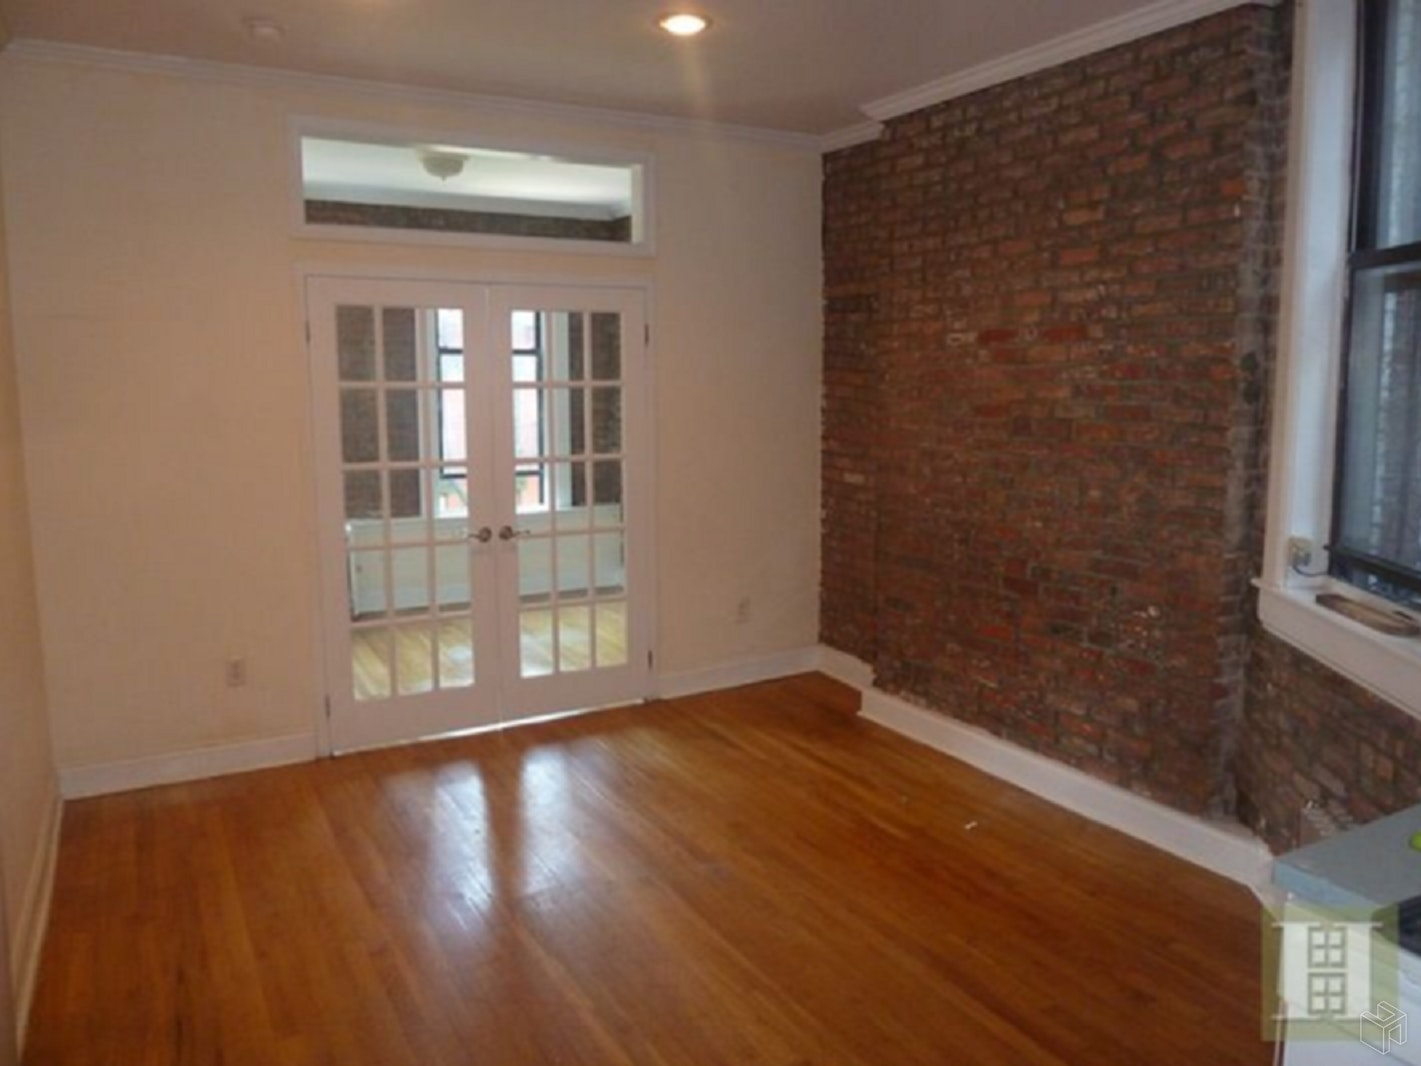 73 East 3rd Street, East Village, NYC, 10003, Price Not Disclosed, Rented Property, Halstead Real Estate, Photo 4